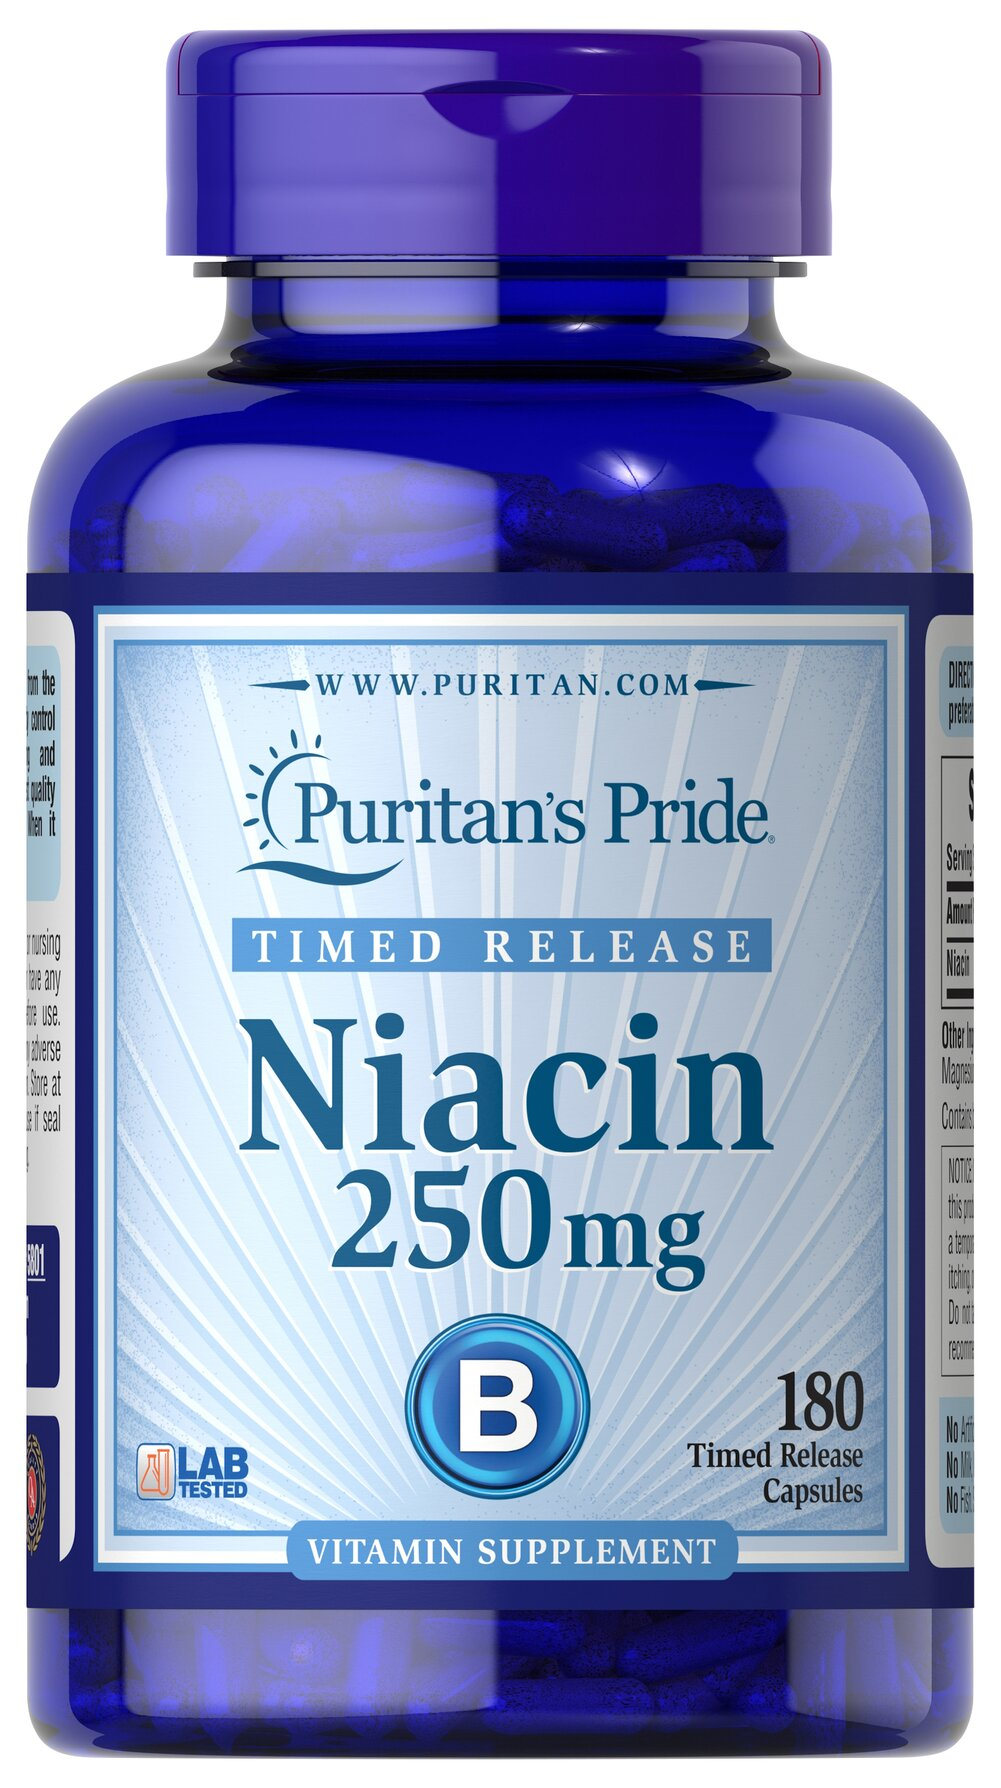 Niacin 250 mg Timed Release <p>Supports Energy Metabolism and Nervous System Health**</p><p>Laboratory Tested</p><p>Niacin is a B-Vitamin, which is part of a coenzyme needed for energy metabolism.** Niacin helps maintain healthy functions of the nervous system and skin.** This product is formulated to release Niacin over a prolonged period of time.</p> 180 Timed Release Capsules 250 mg $18.49